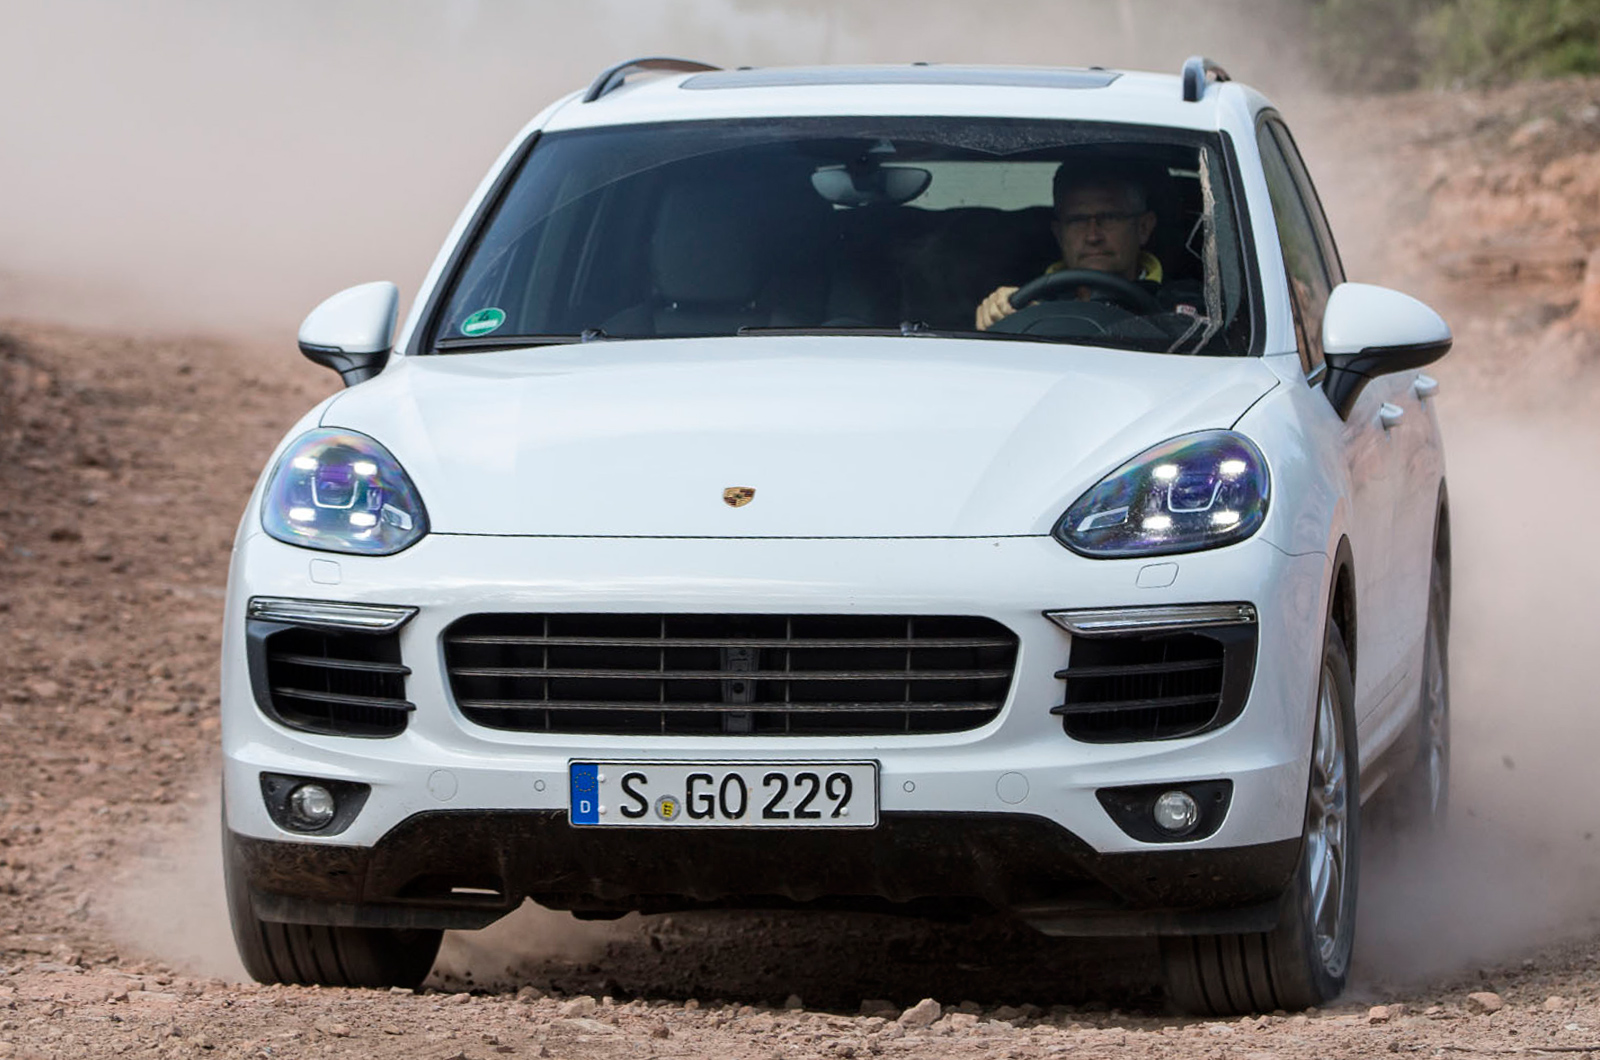 2014 porsche cayenne s diesel first drive review autocar. Black Bedroom Furniture Sets. Home Design Ideas